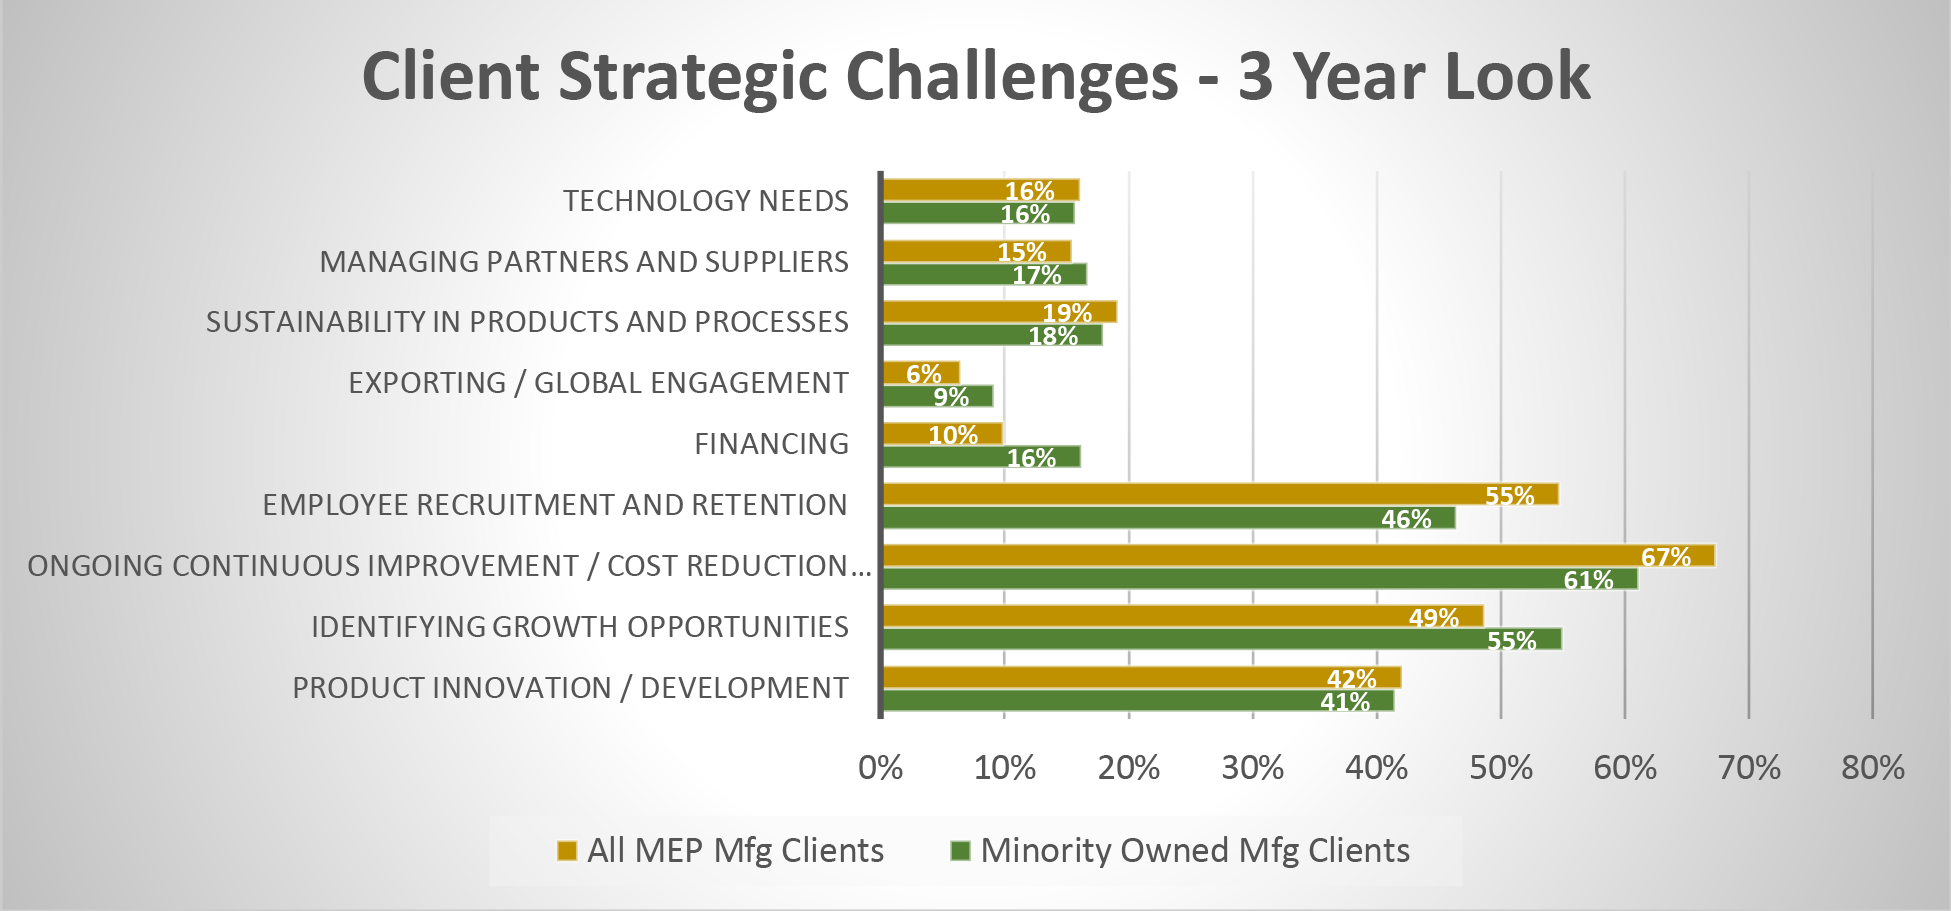 client strategic challenges chart